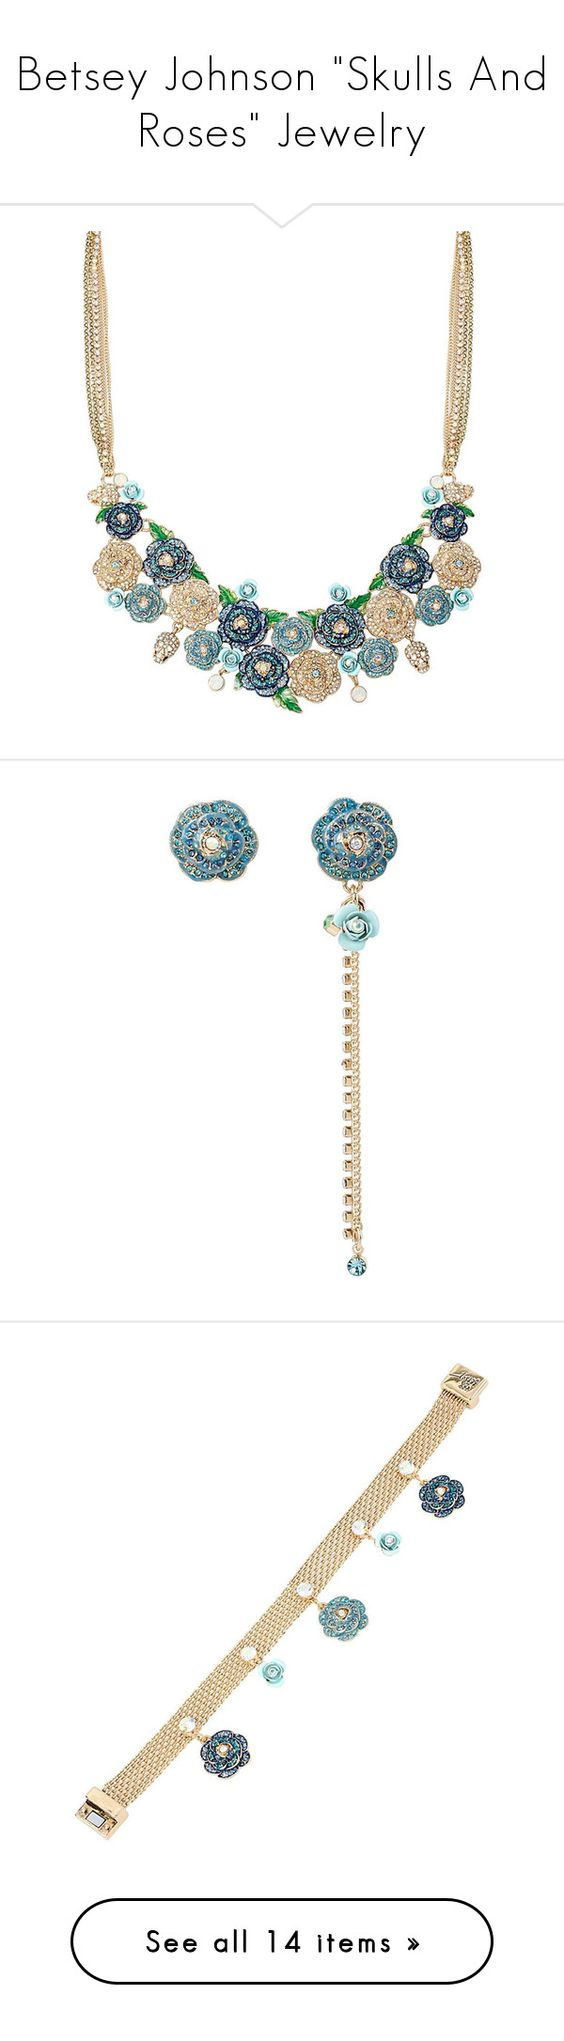 """""""Betsey Johnson """"Skulls And Roses"""" Jewelry"""" by atomik-concia ❤ liked on Polyvore featuring jewelry, necklaces, multi, skull jewelry, rose flower jewelry, multi-chain necklace, rose flower necklace, sparkly necklace, earrings and pave jewelry"""